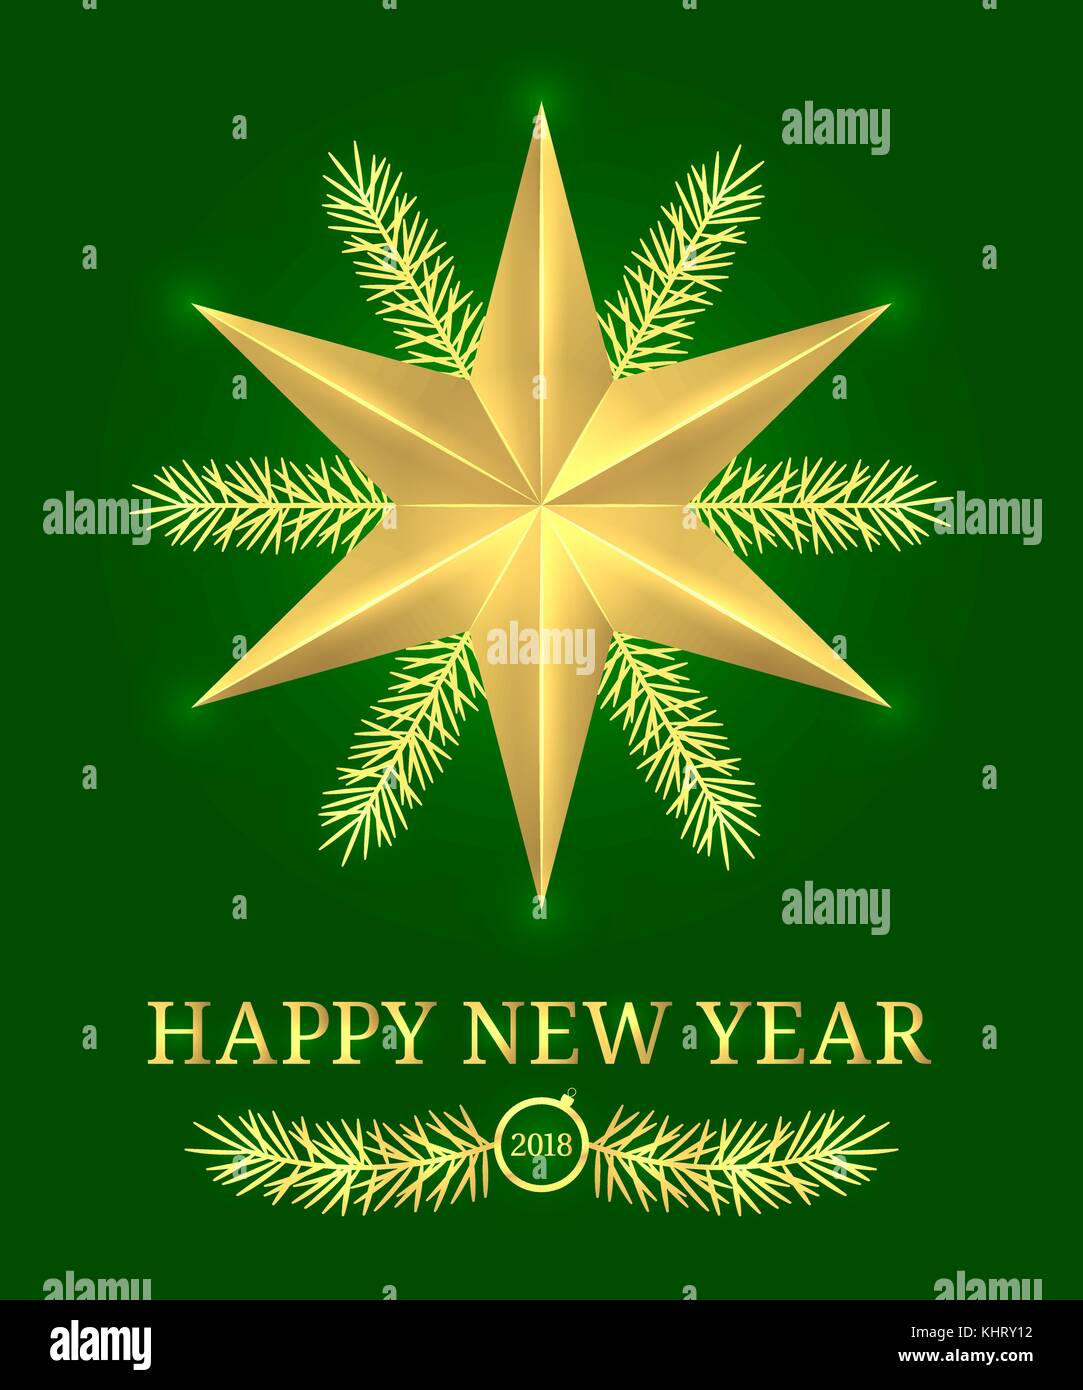 happy new year 2018 vector holiday banner with new year greeting in golden and green